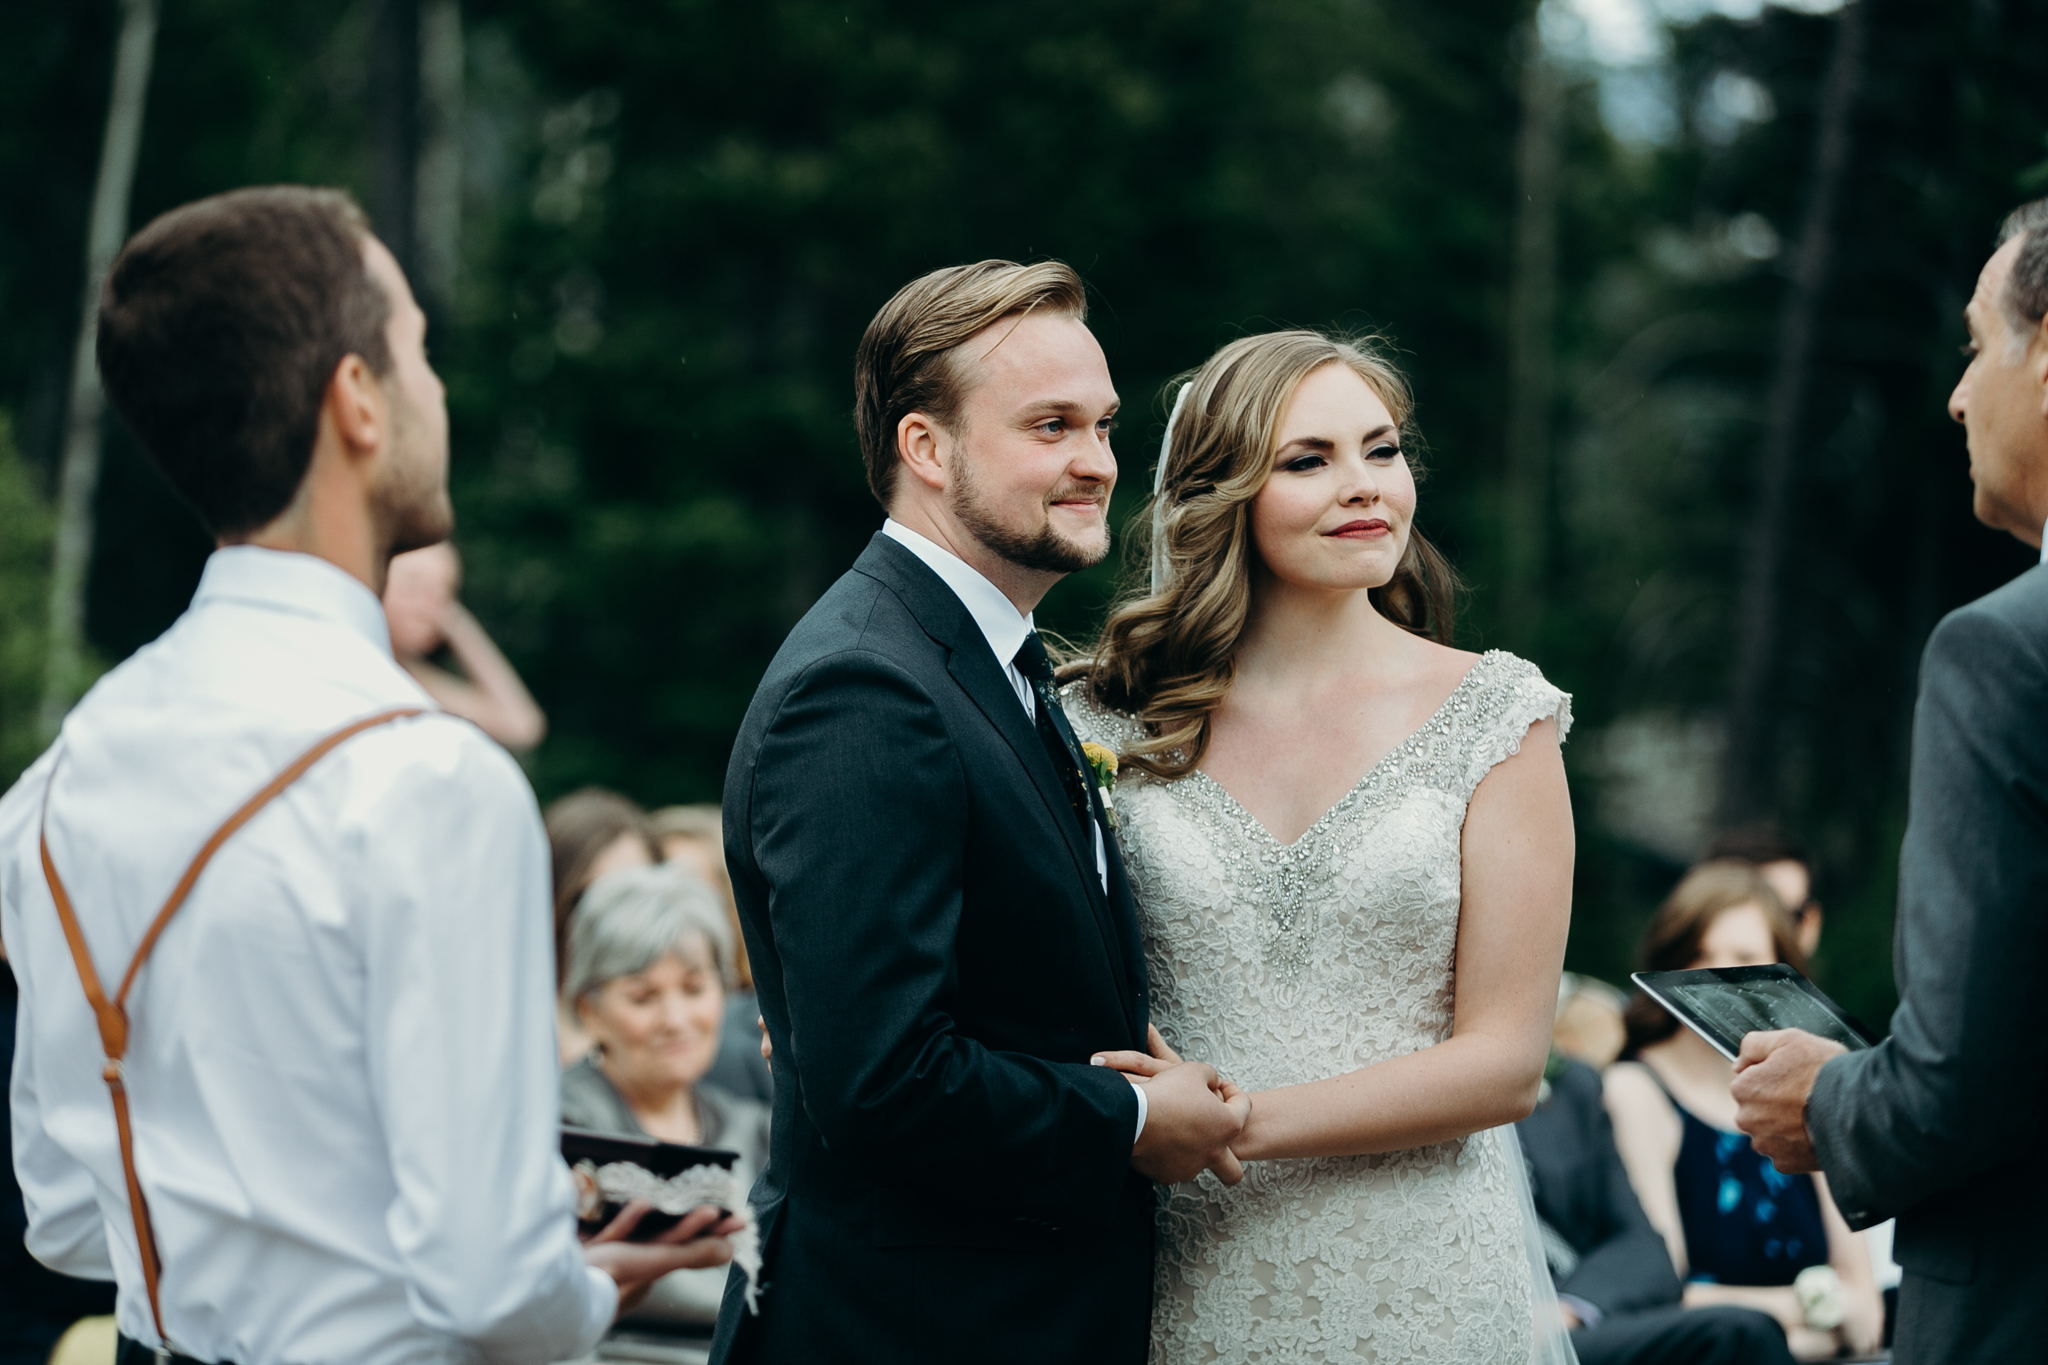 Silvertip Resort wedding ceremony in Canmore Alberta